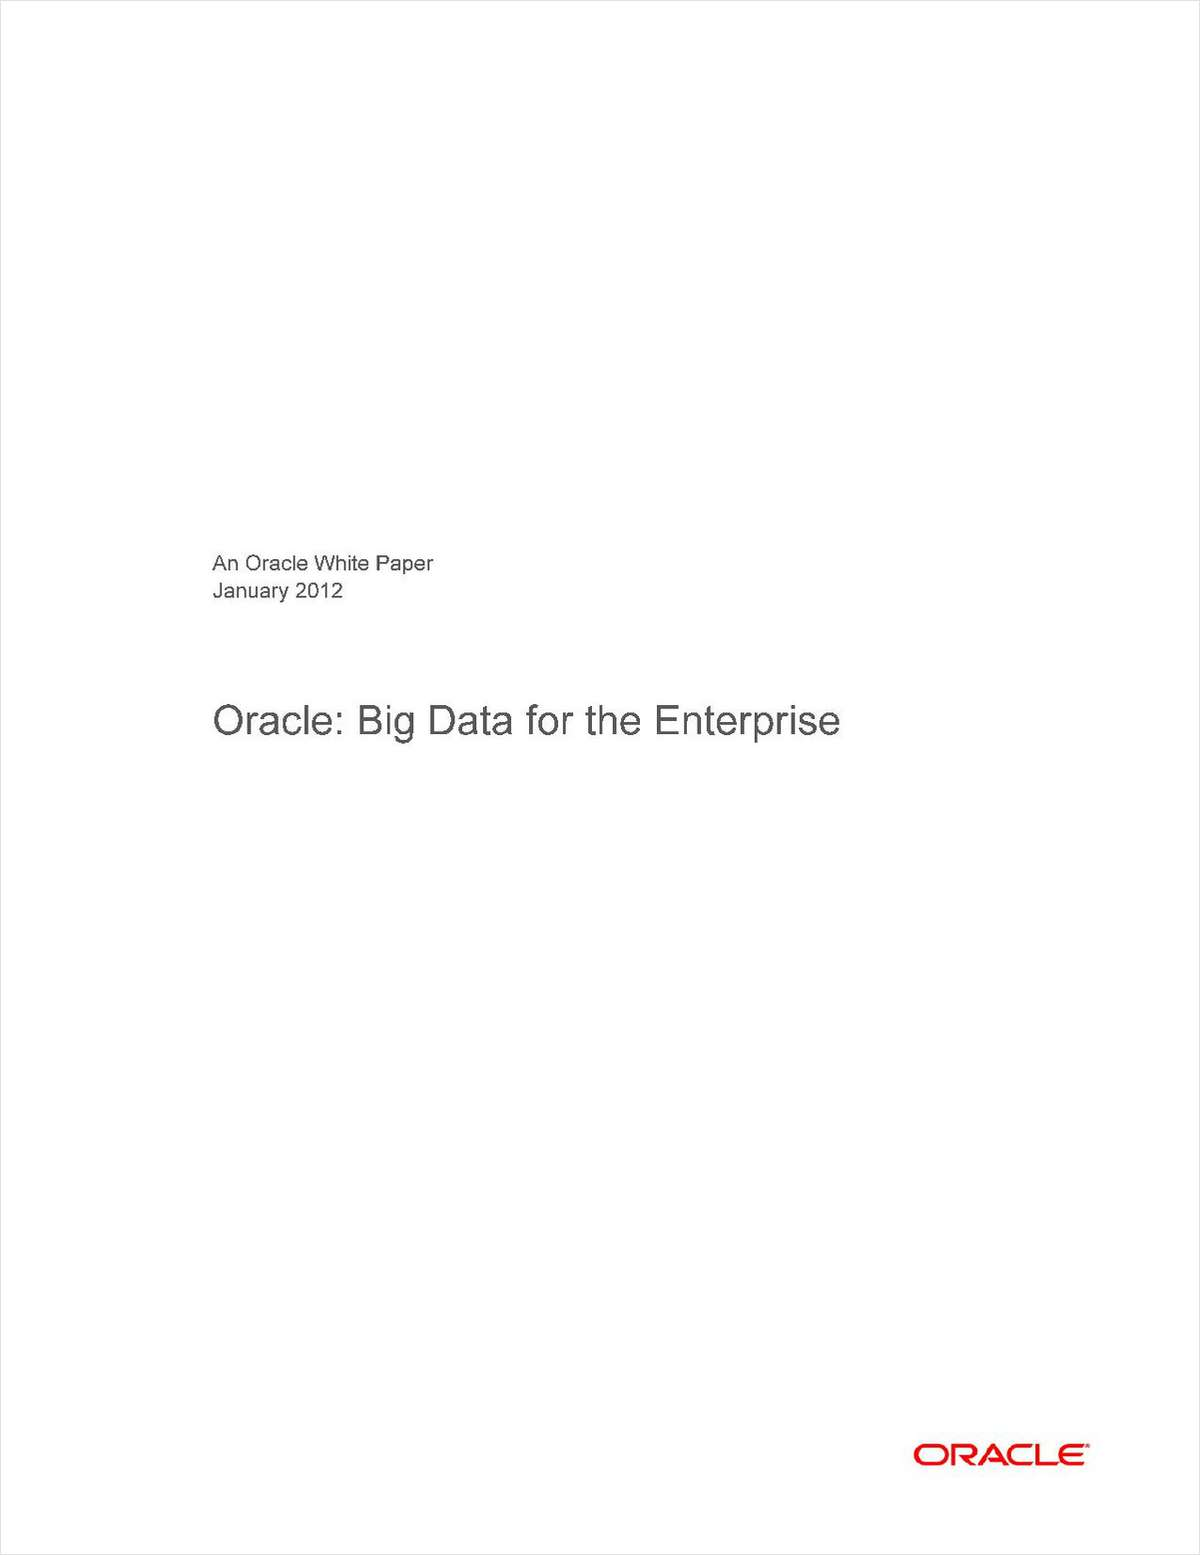 Oracle: Big Data for the Enterprise